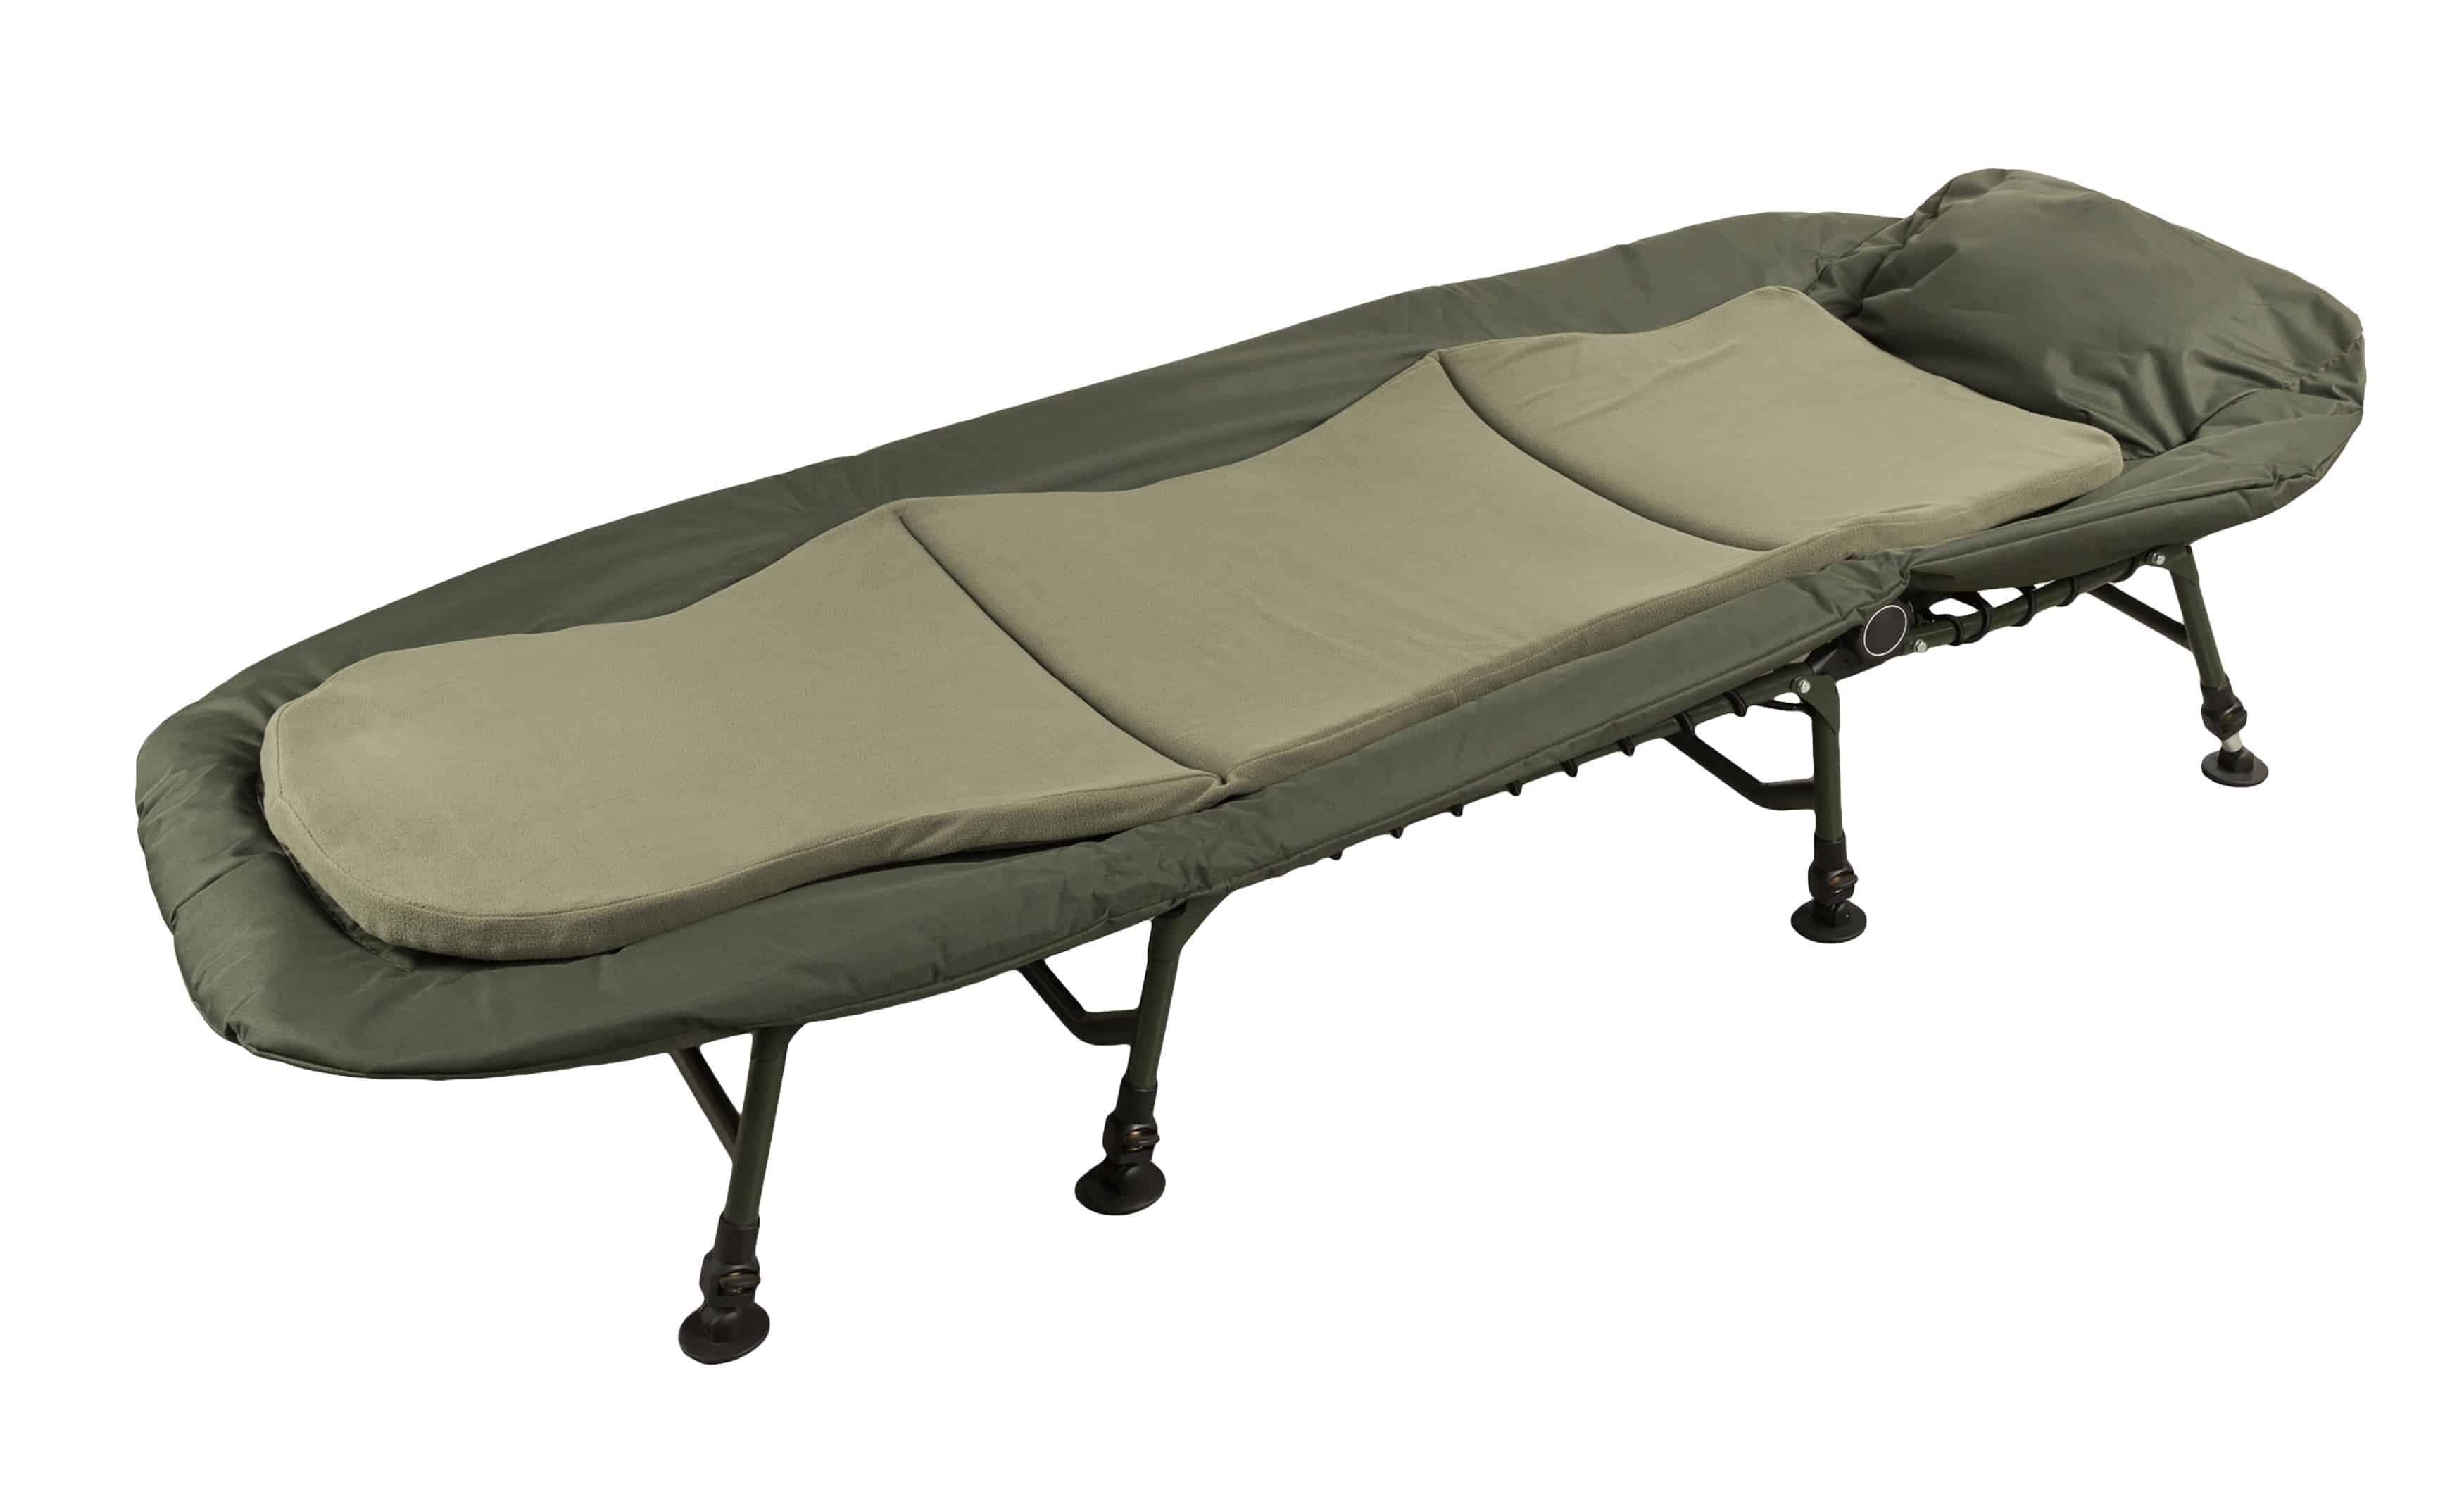 What Is The Best Camping Cot For The Money In 2018 ...